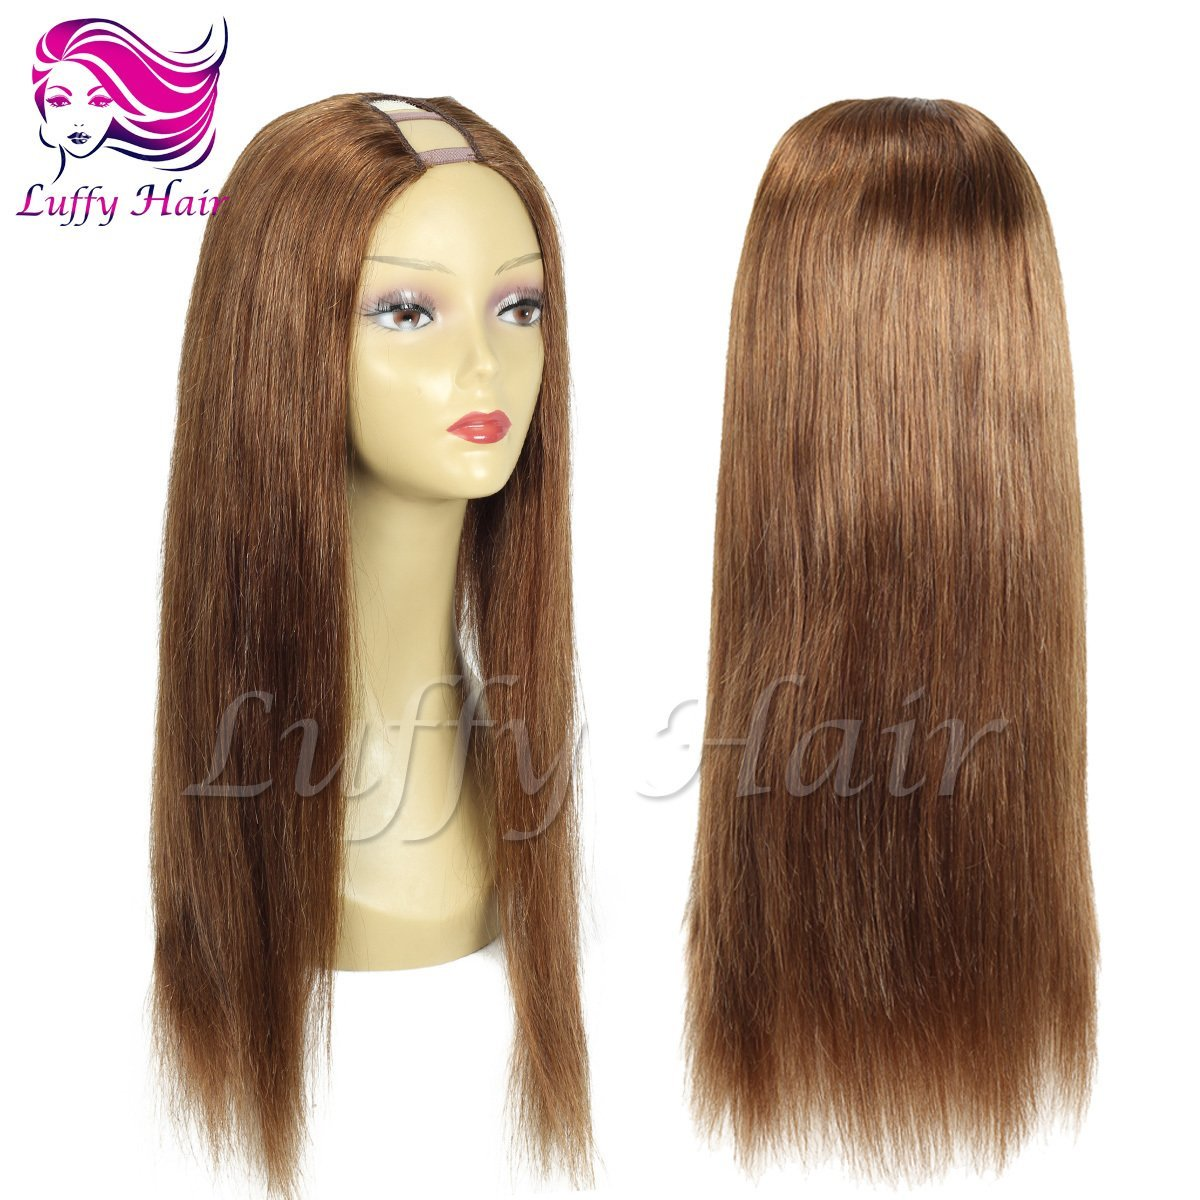 8A Virgin Human Hair Color #6 Silky Straight U Part Wig - KWU067